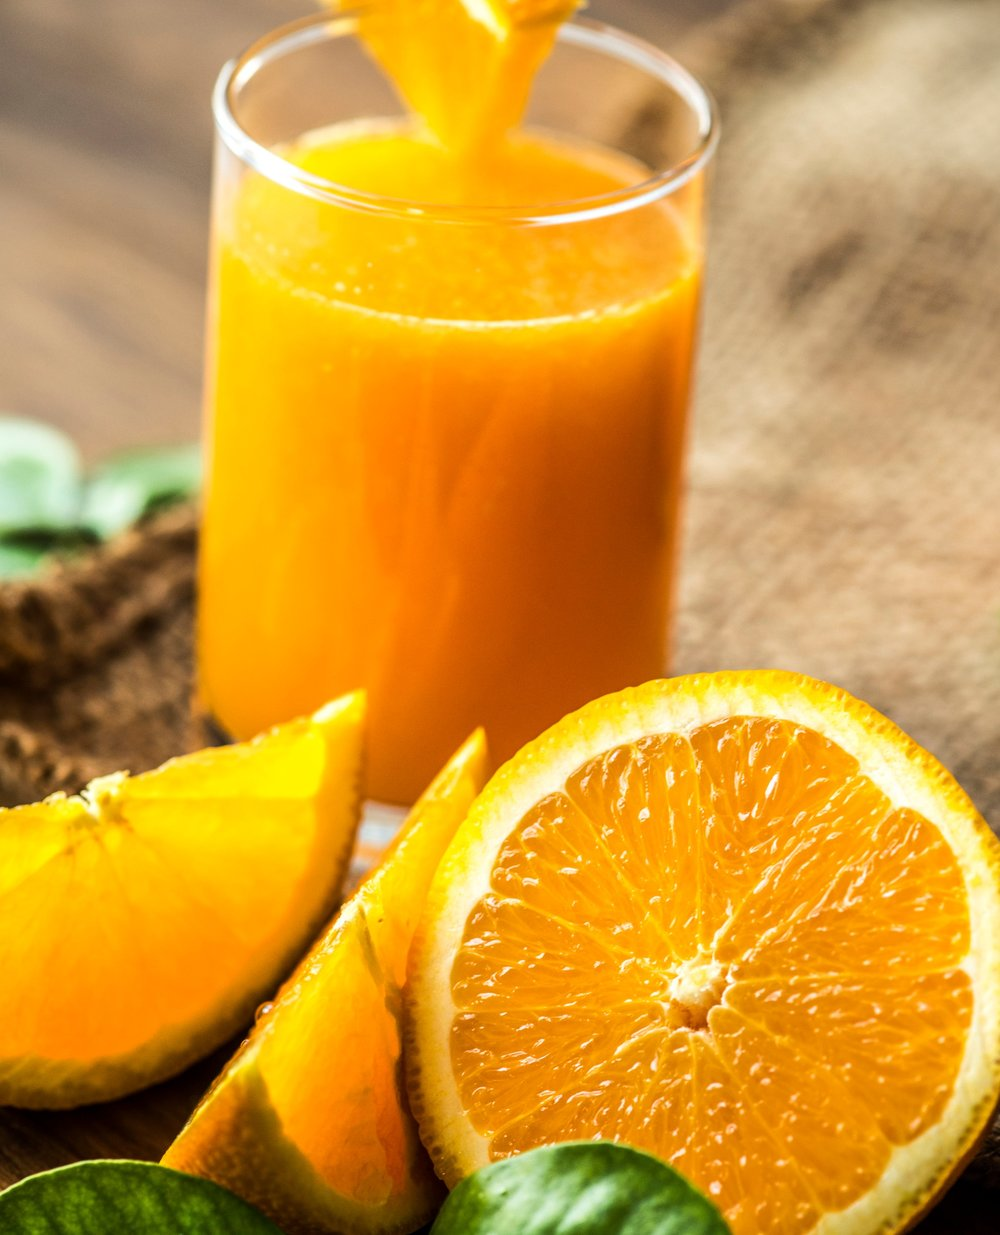 - During my first pregnancy, I had very little morning sickness. In fact, I do not remember having nausea or vomiting, only strong heartburn, where the only solution for me was orange juice and lots of it! I drank almost 1/4 gallon per day especially in the morning, until the 2nd trimester.